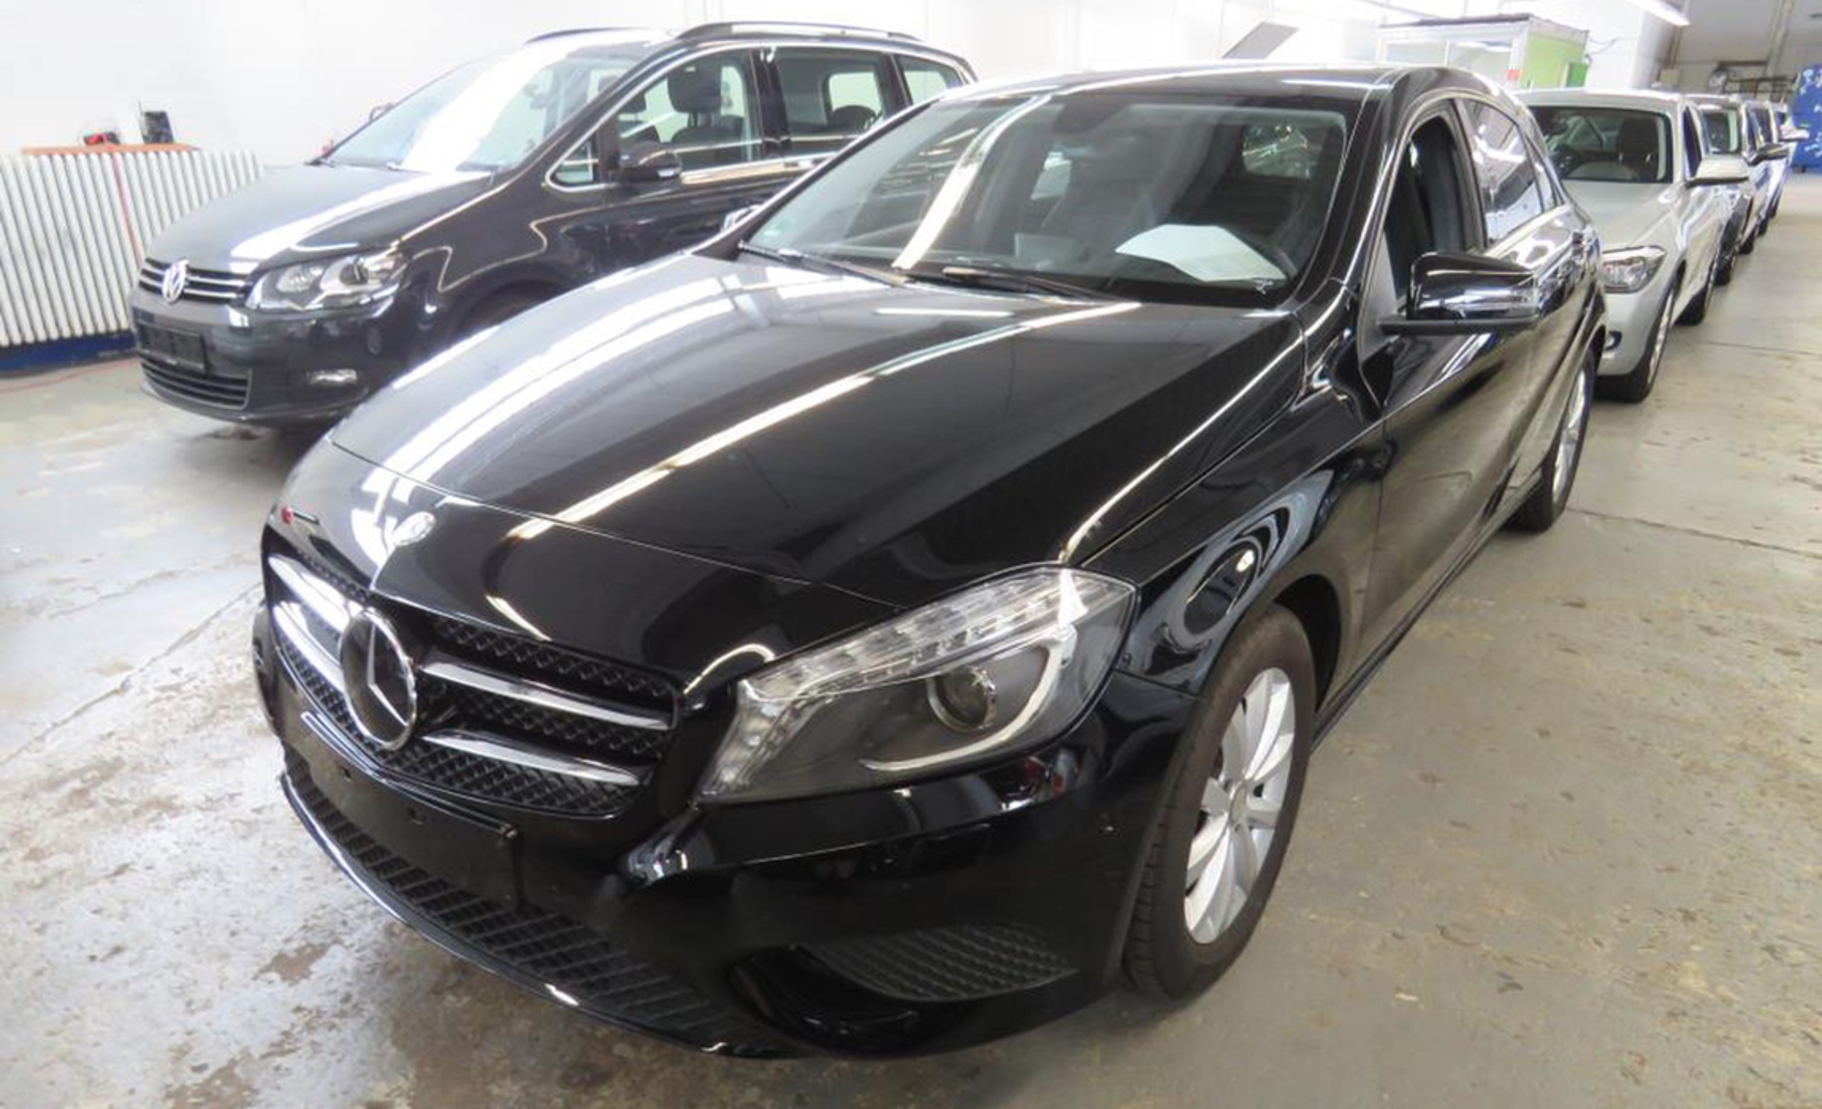 Mercedes-Benz A-Klasse 180 CDI (BlueEFFICIENCY) Style (546115) detail1